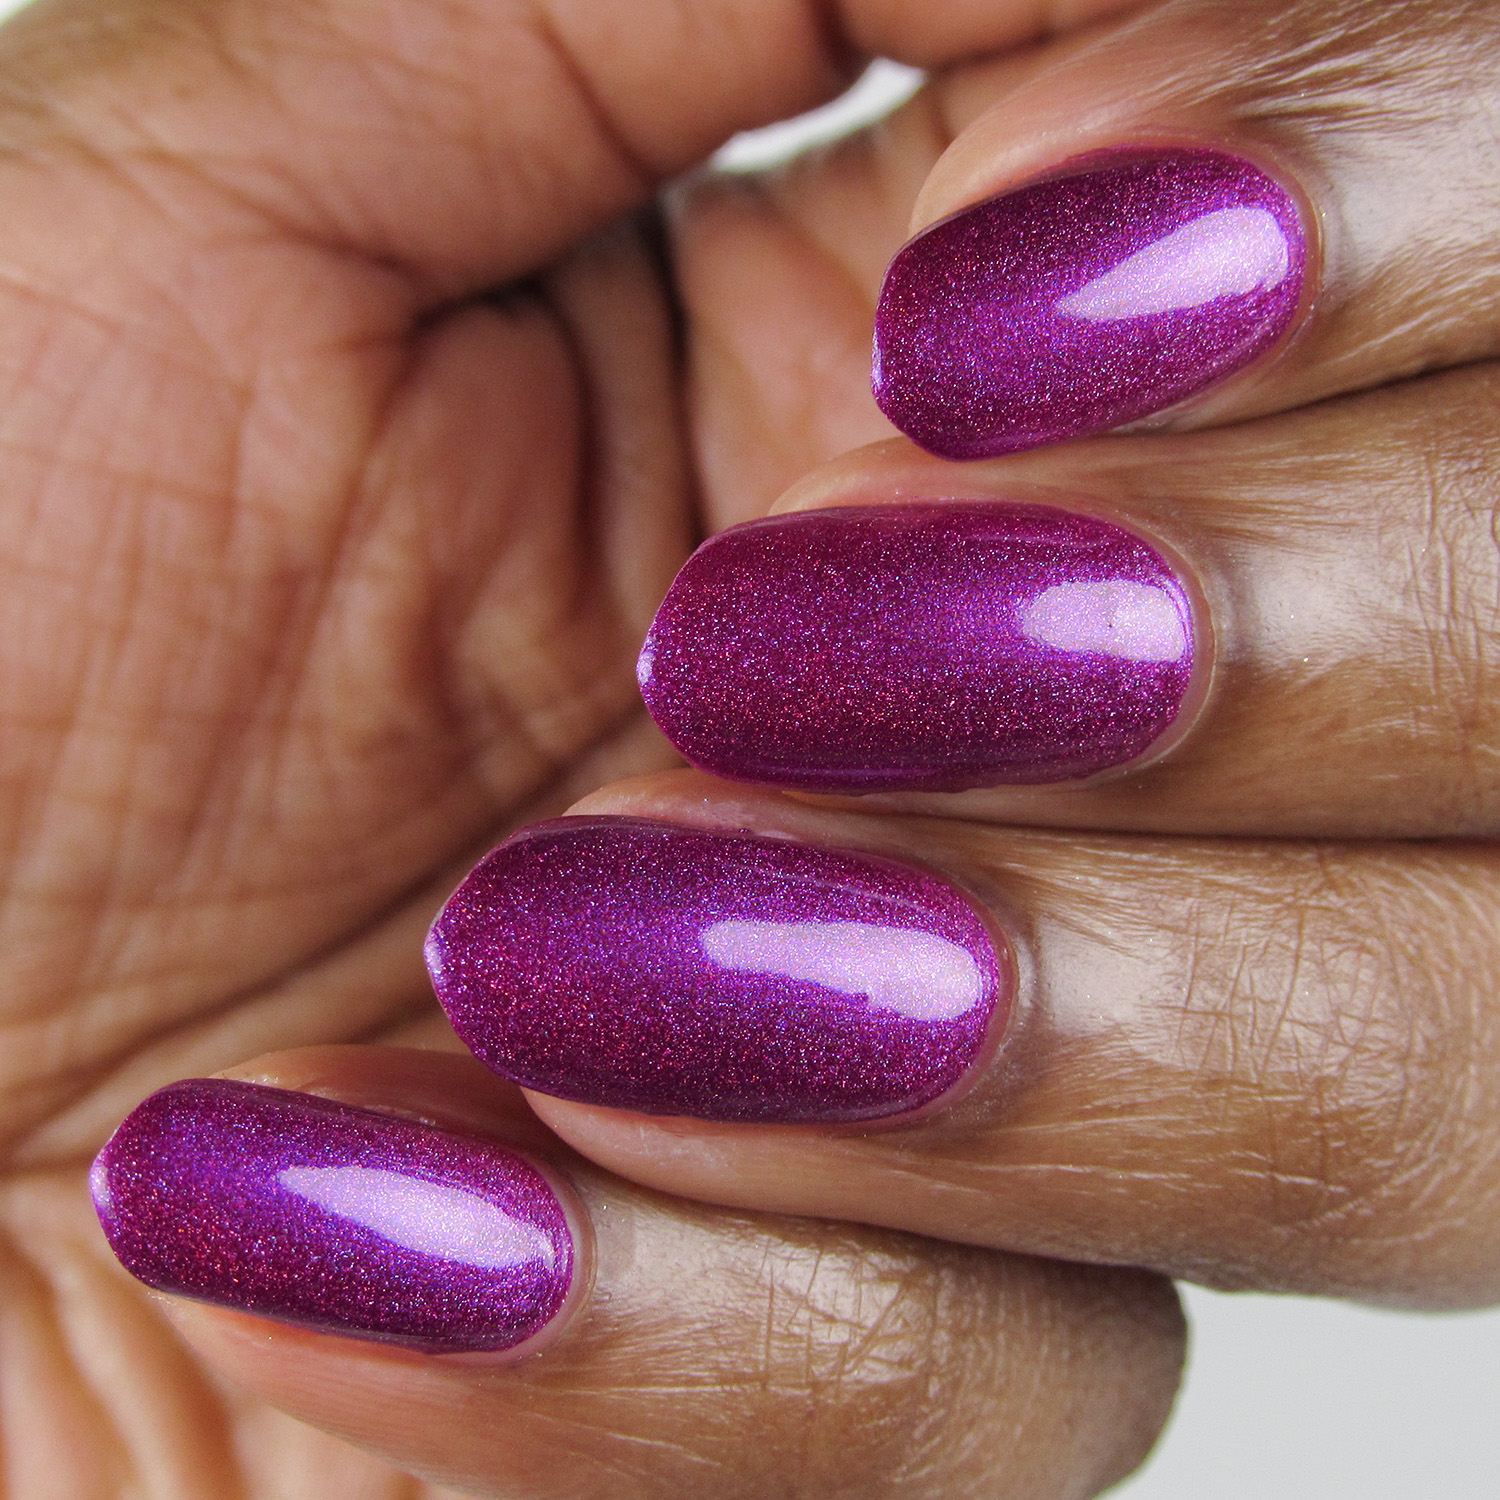 Hostile - angle - Vapid Lacquer - April 2018 - Spring release - berry purple - linear holographic